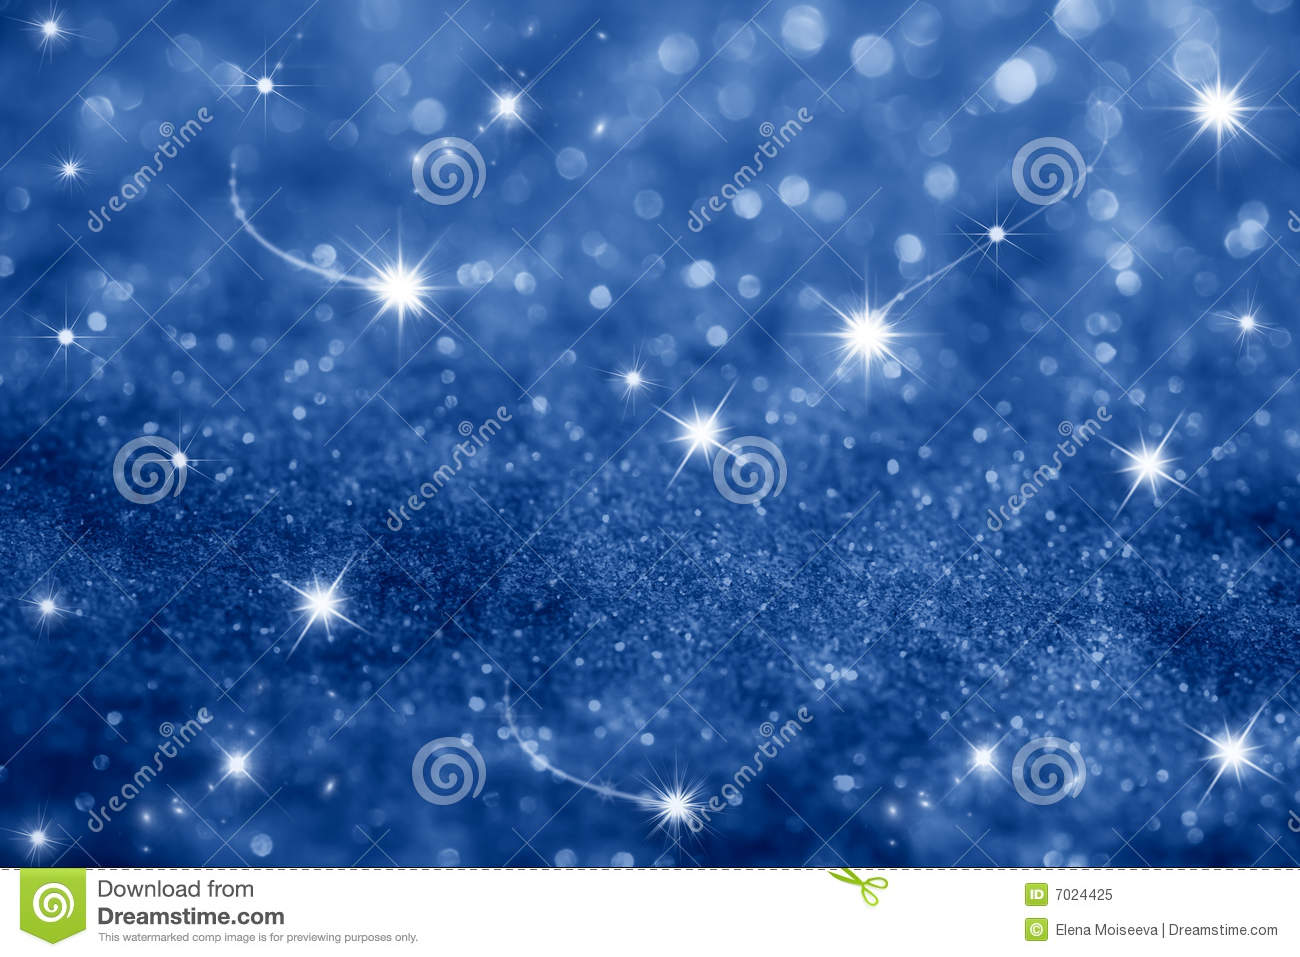 Dark blue stars and glitter sparkles background